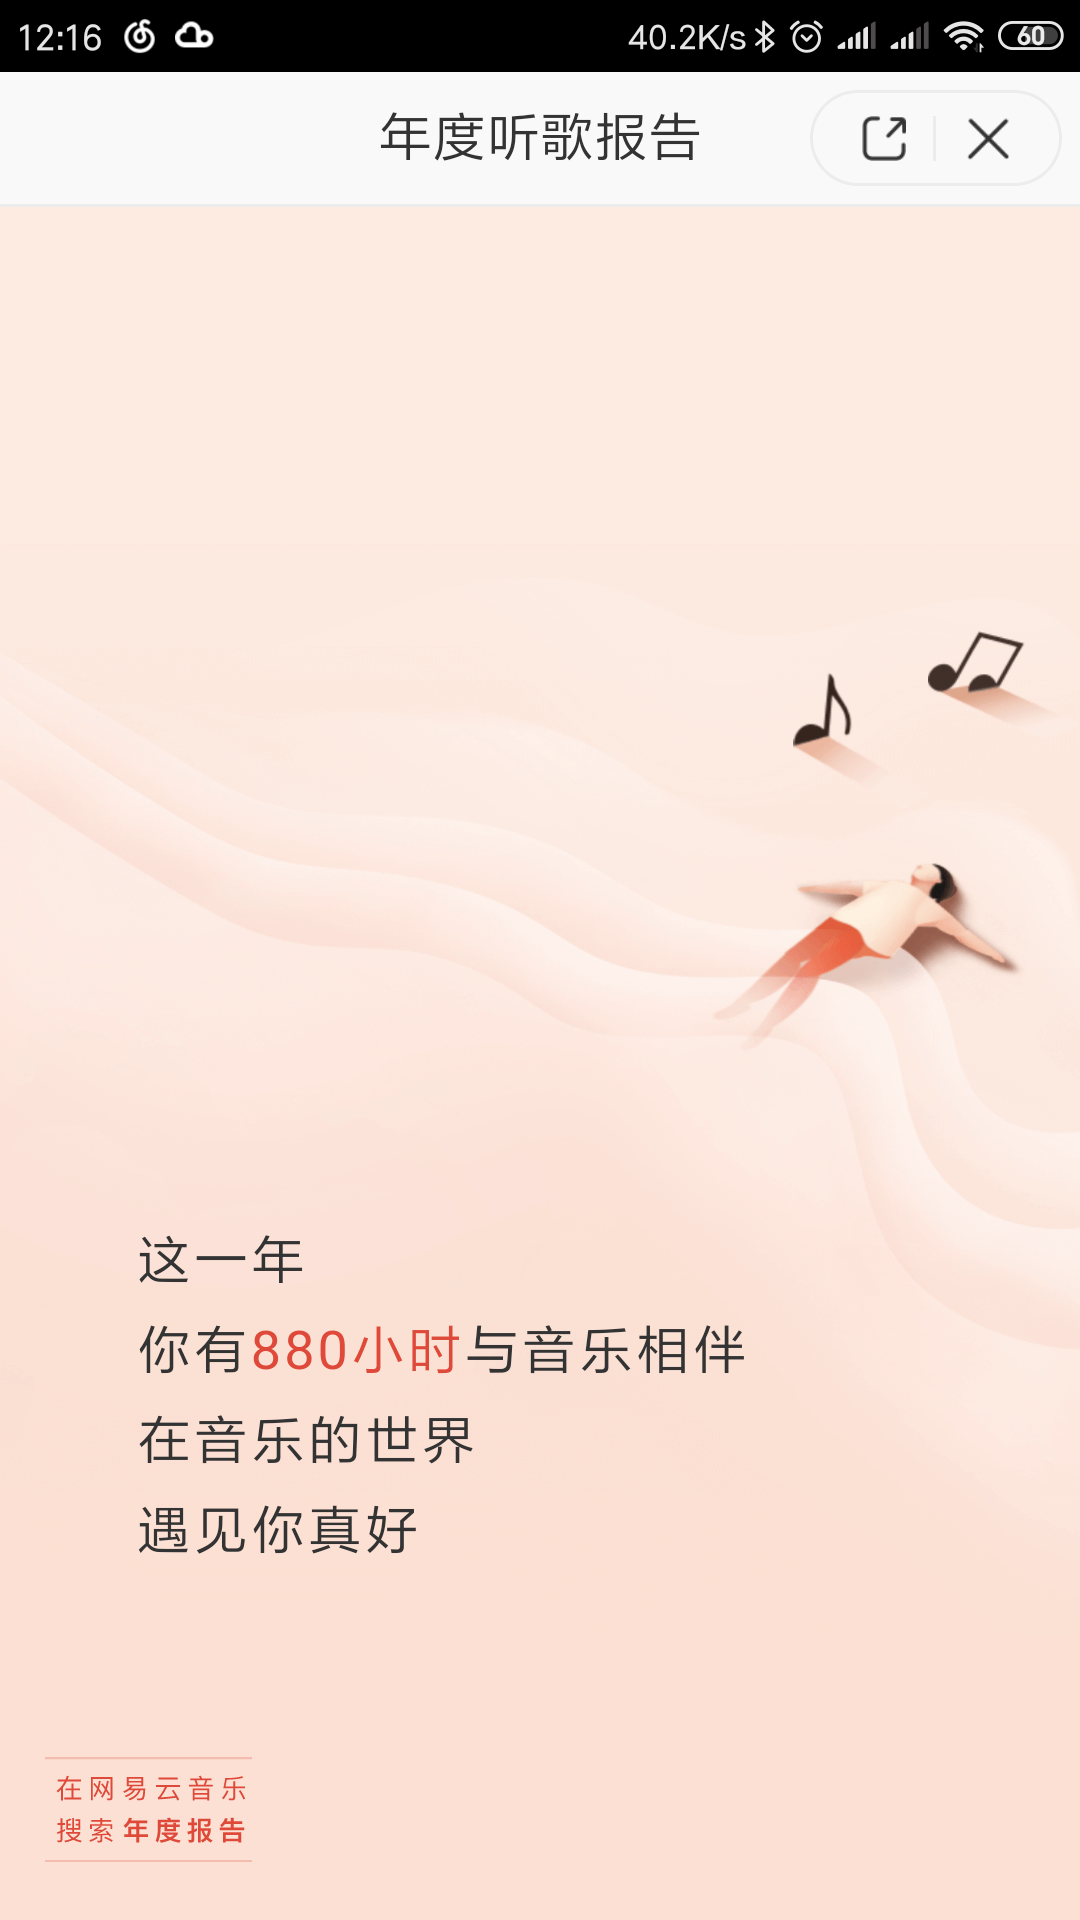 Screenshot_2019-01-04-12-16-09-435_com.netease.cloudmusic.png